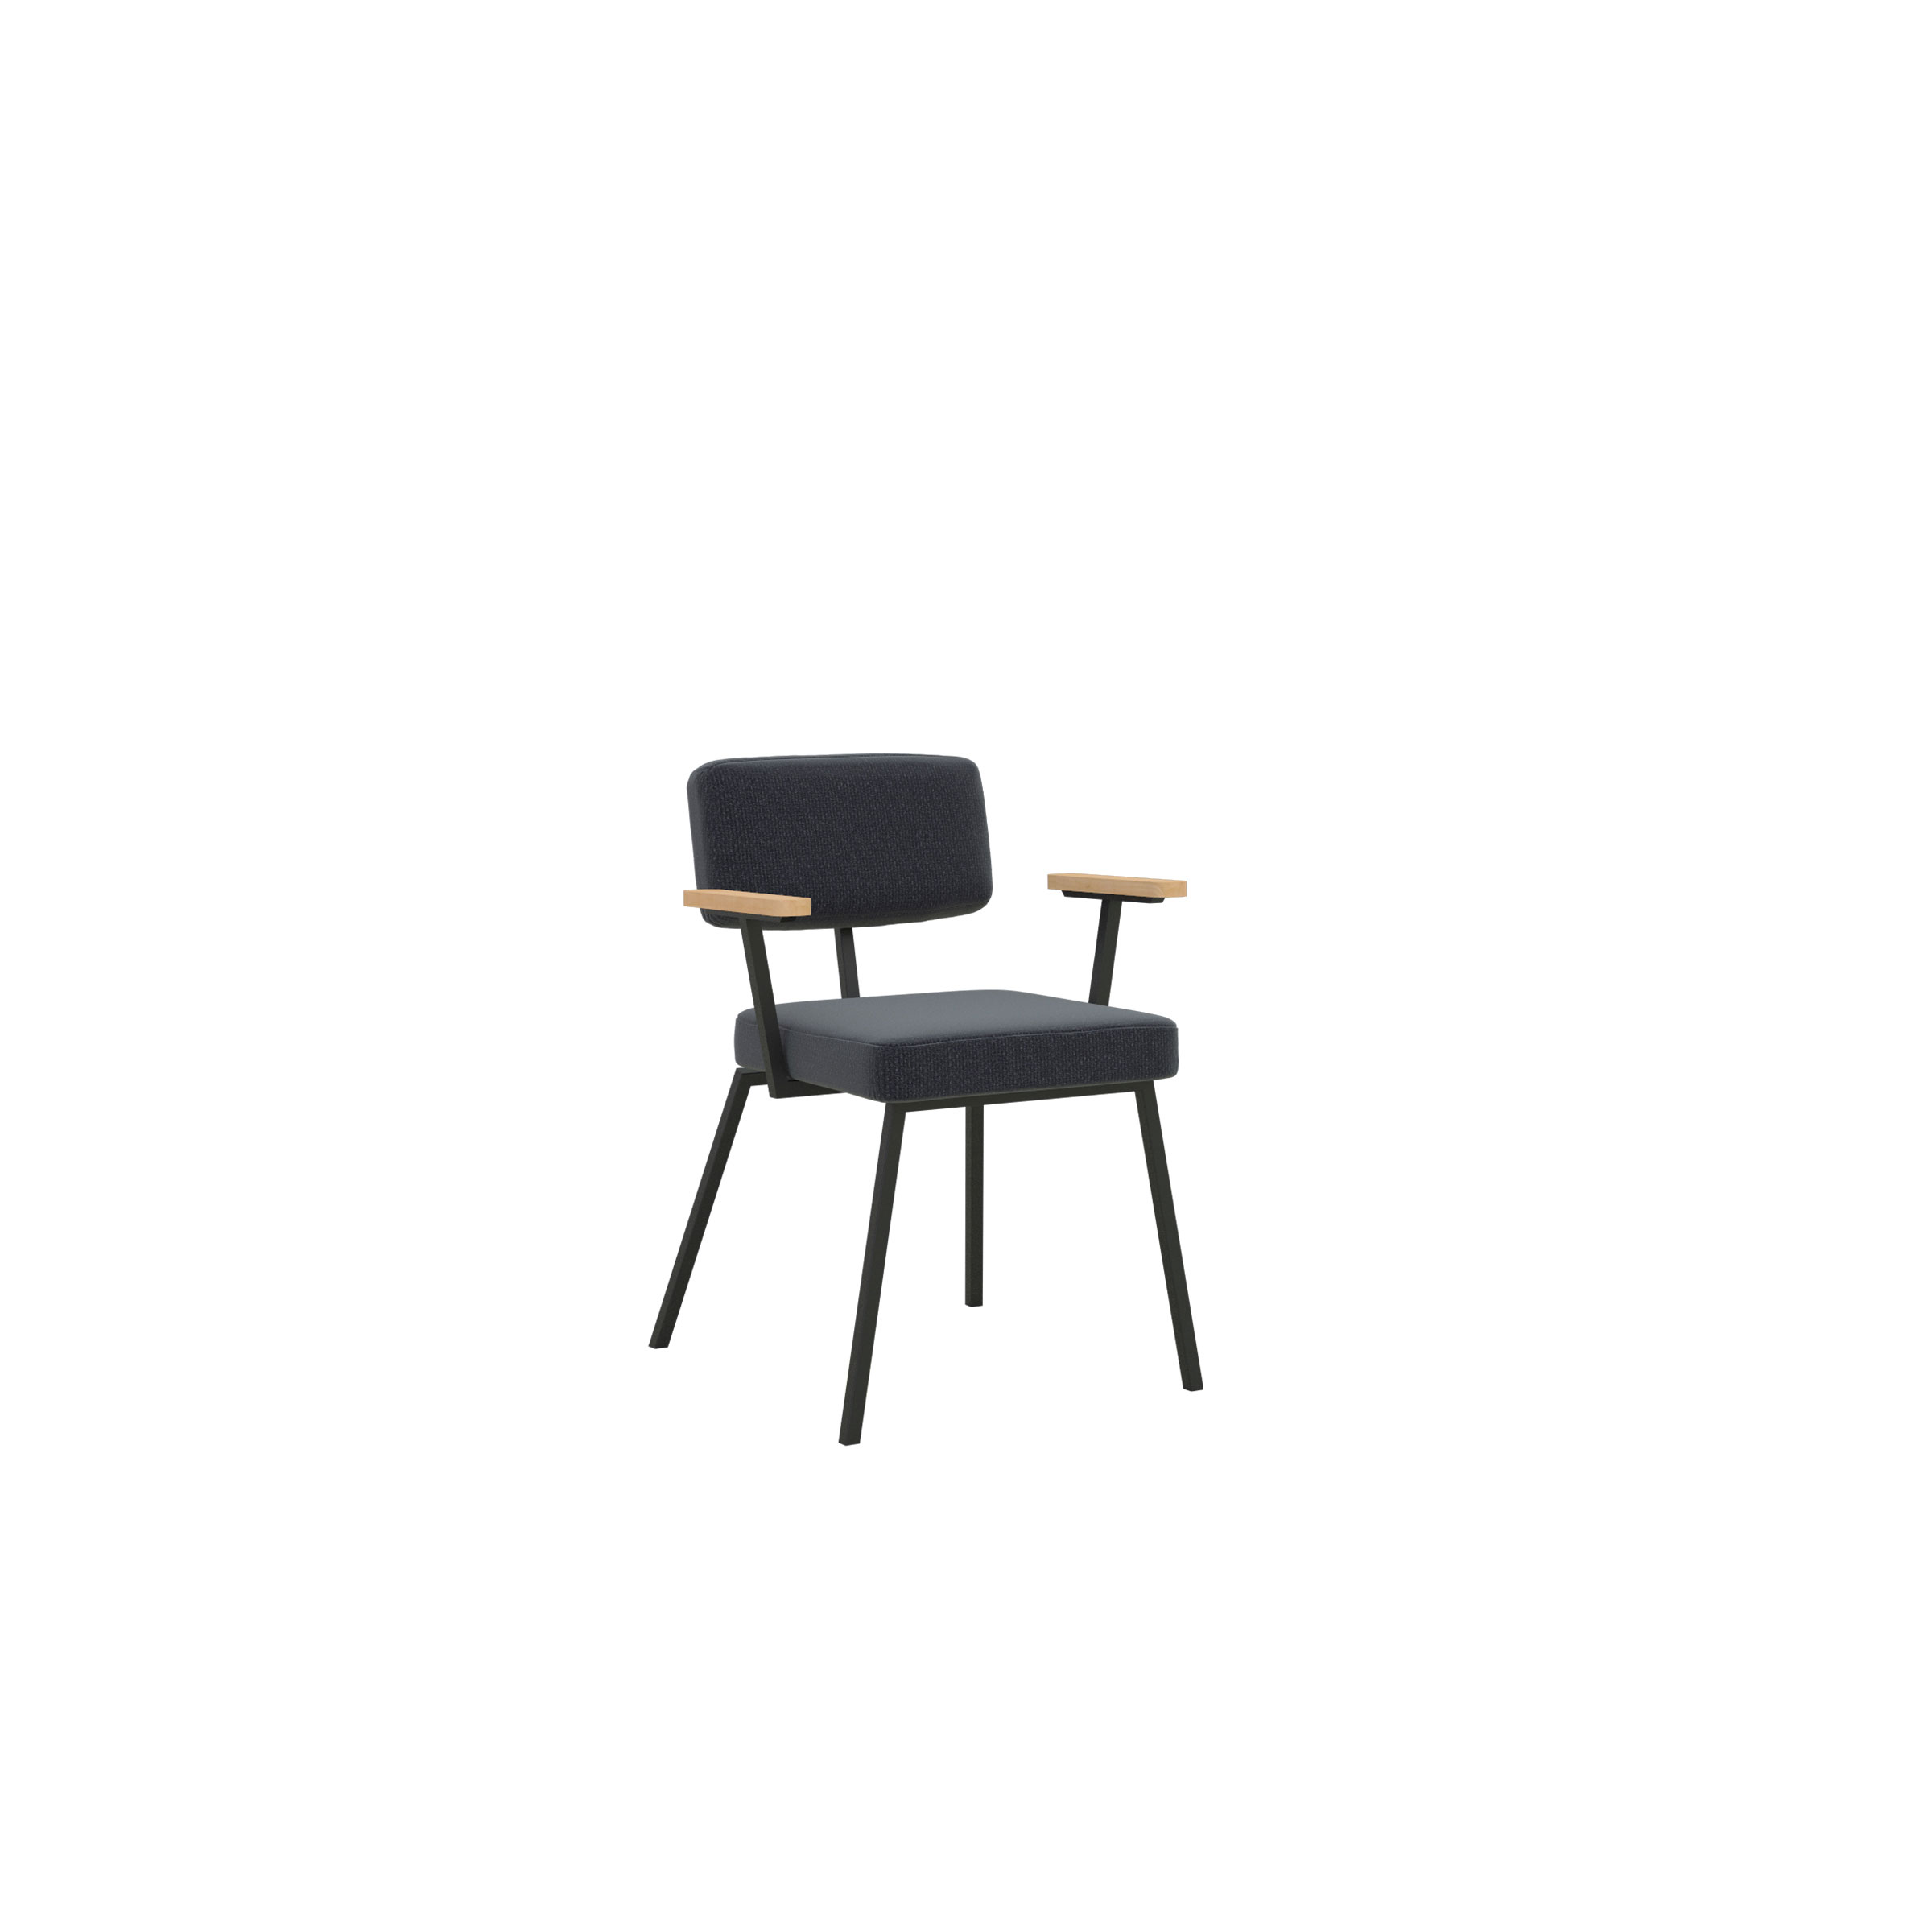 Ode Chair met armleuning